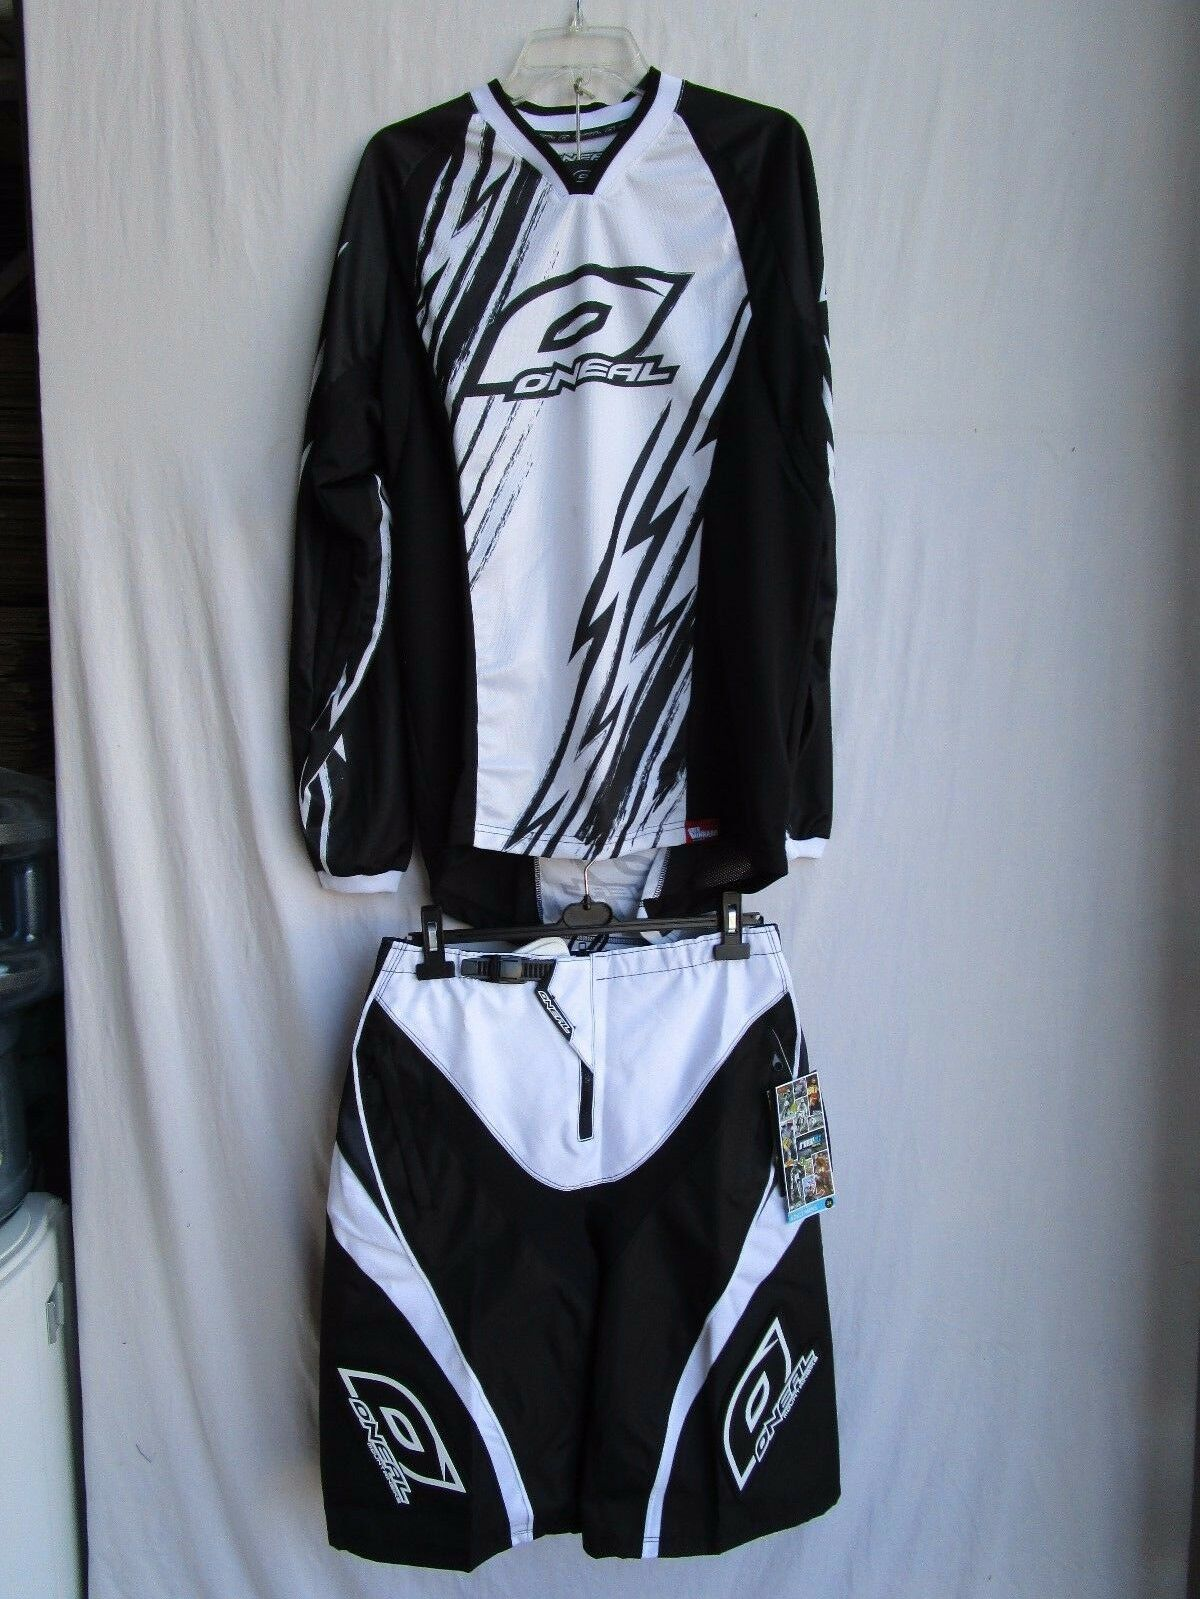 ONEAL element FR men's COMBO BMX MTB DH set  shorts 34 and jersey EXTRA LARGE  wholesale price and reliable quality